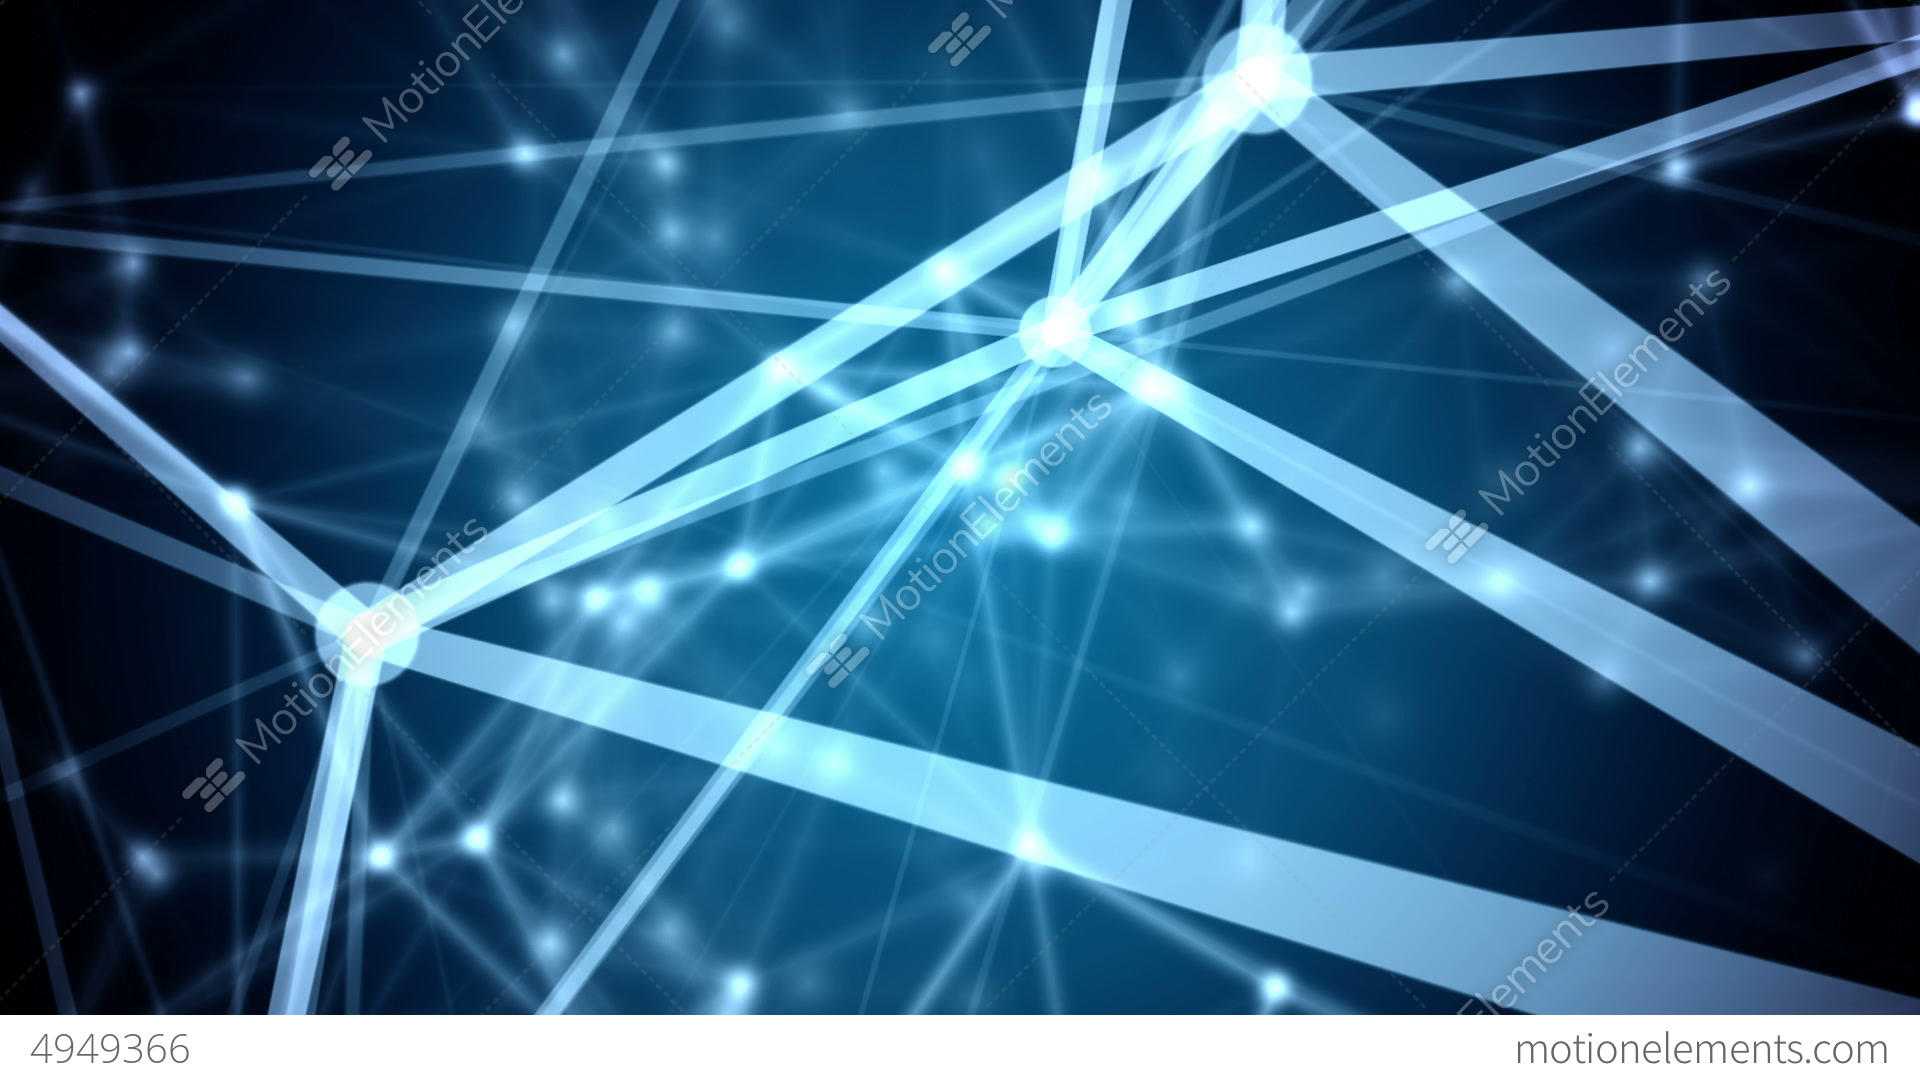 abstract network background - photo #12